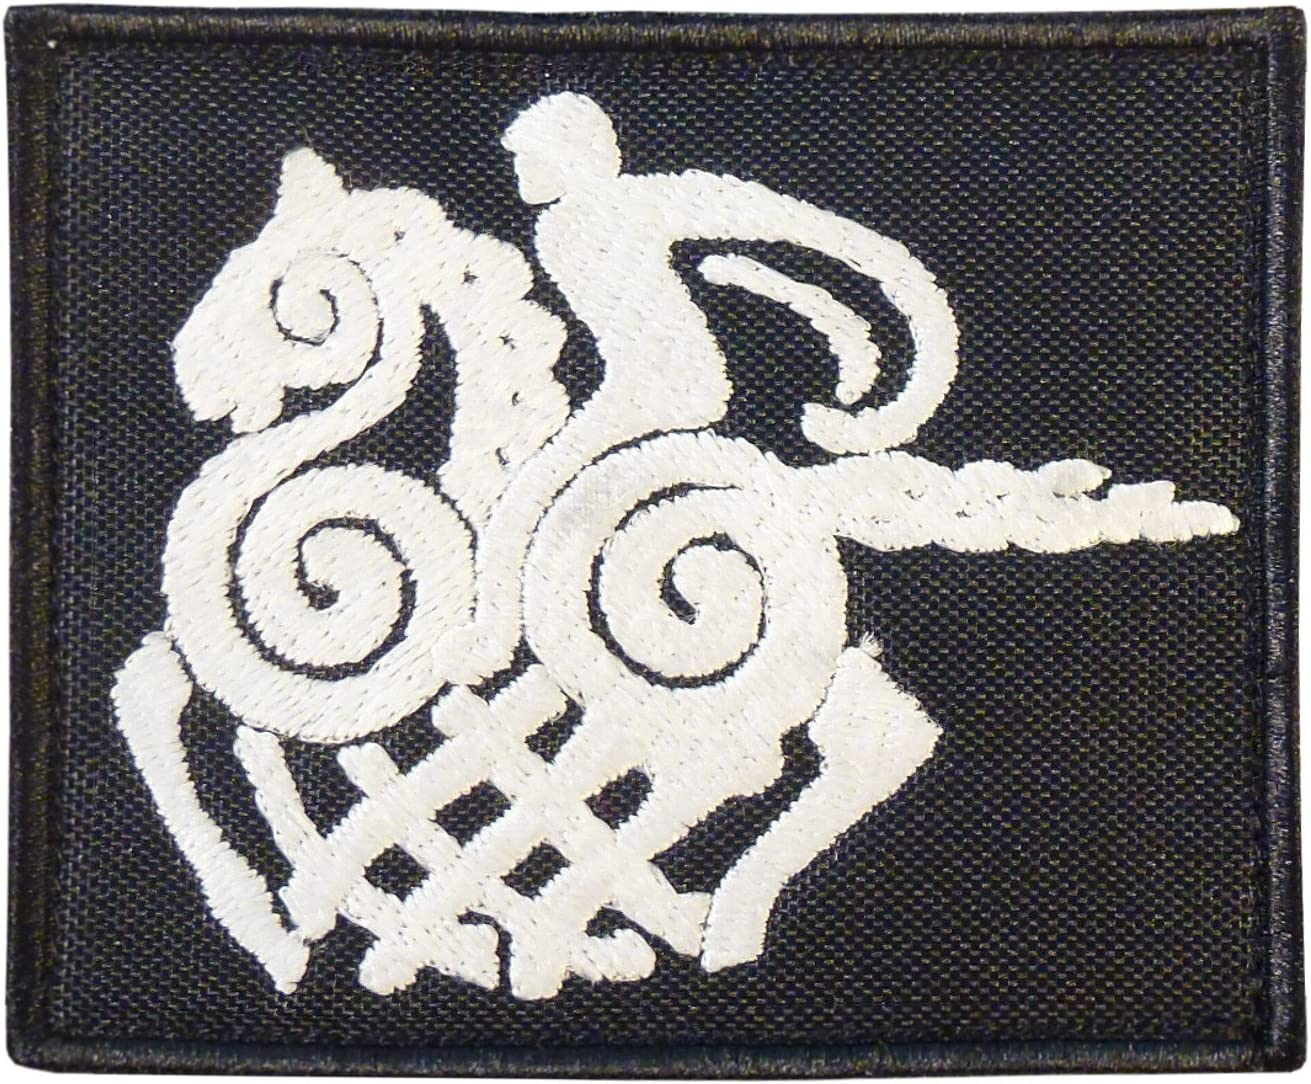 2AFTER1 Sleipnir Horse Odin God Norse Asgard Viking Valhalla Morale Tactical Embroidery Fastener Patch